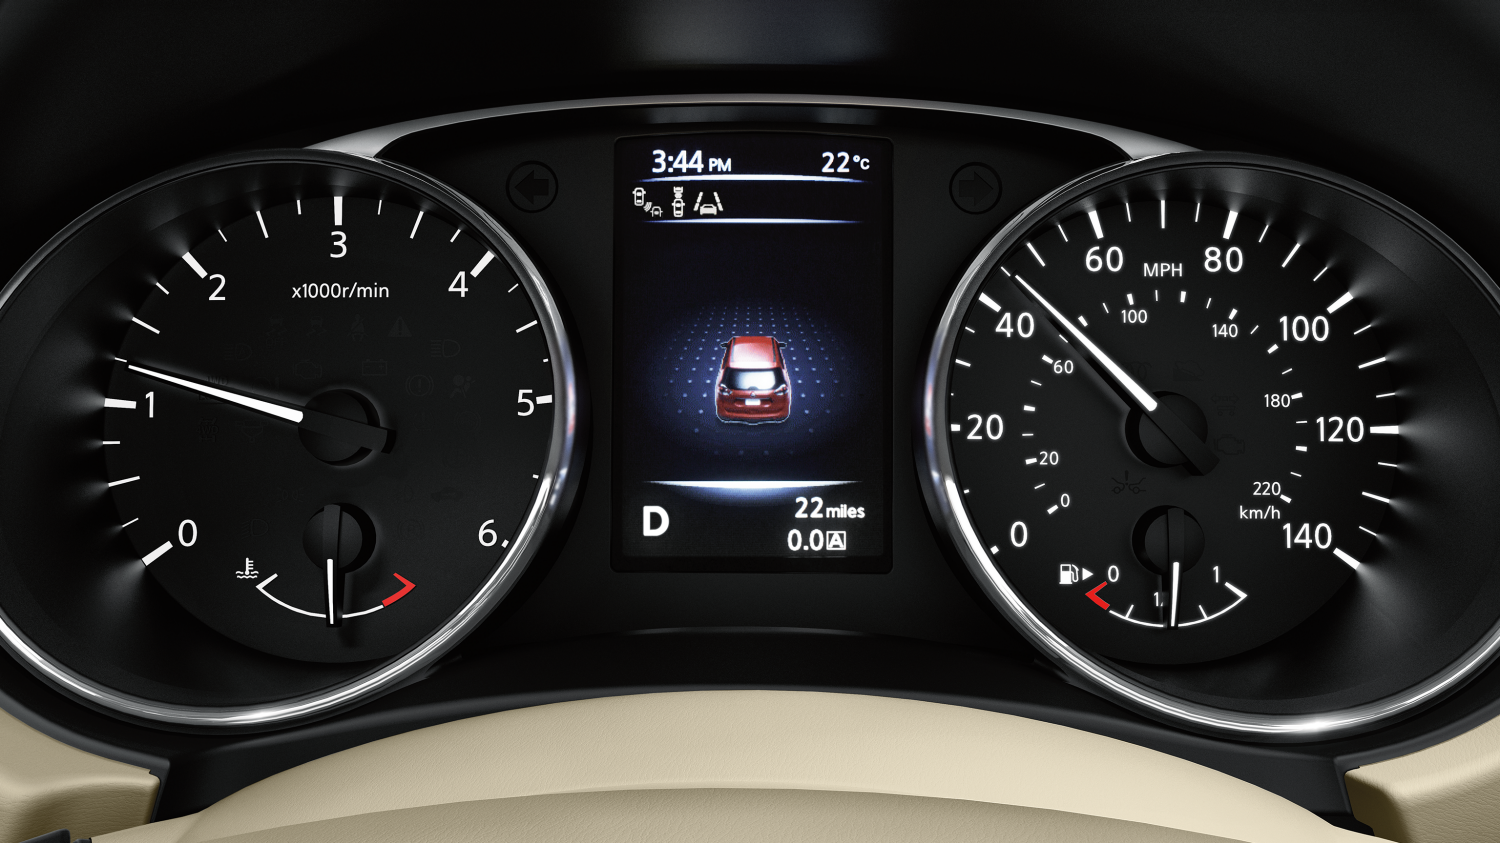 7 seater & 4x4 car features - Drive-assist display | Nissan X-Trail